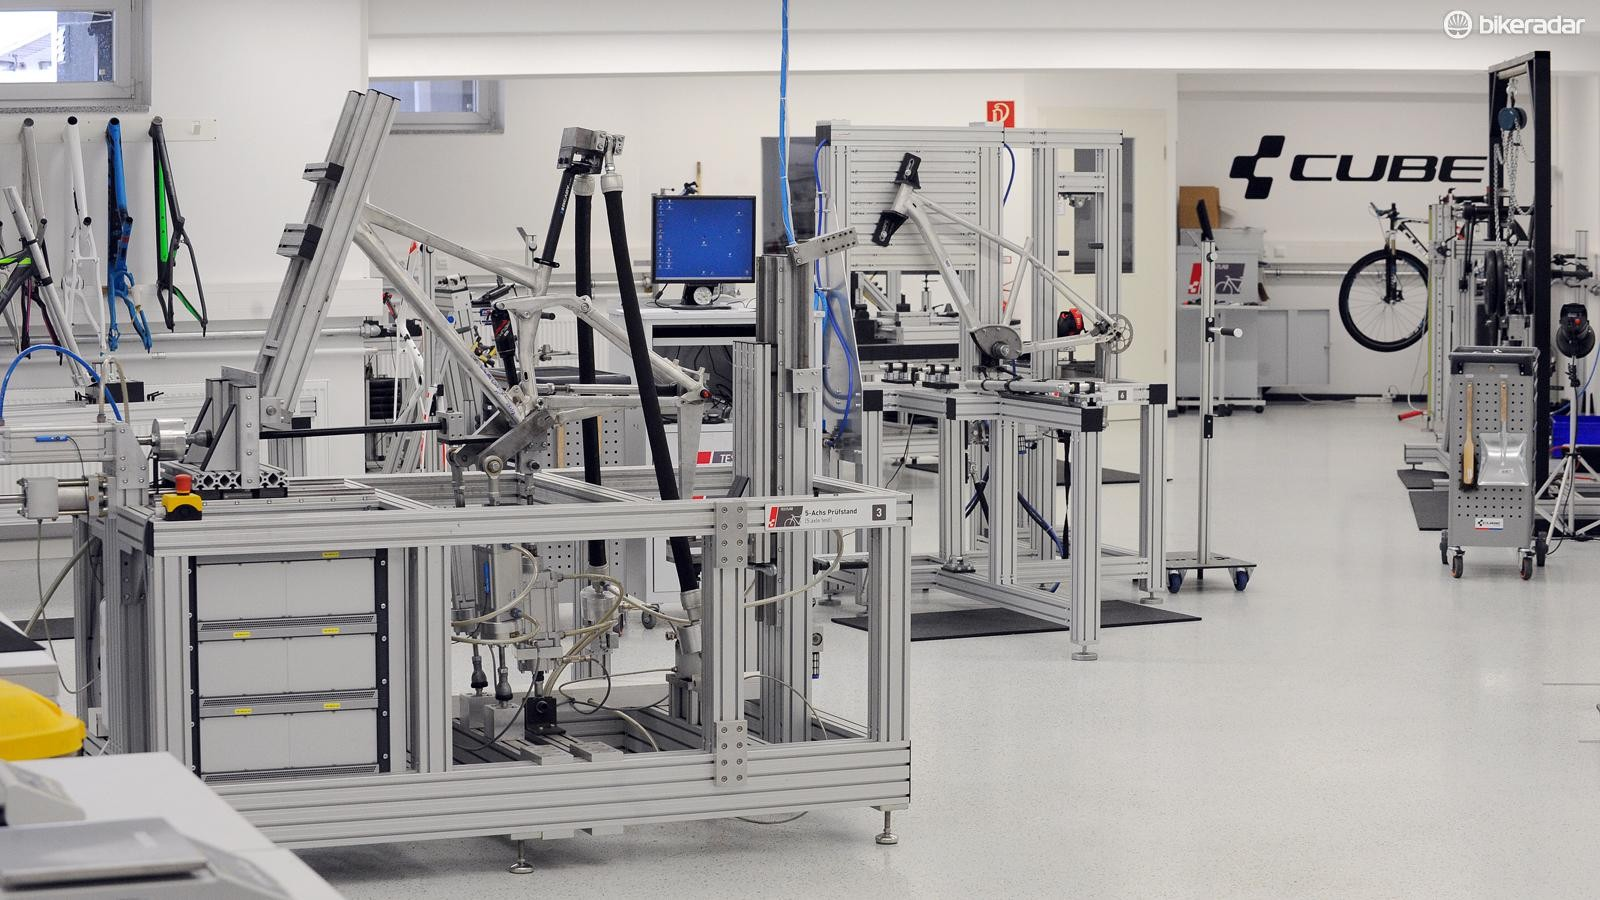 You might recognise some of the bikes on these test rigs. All of Cube's frame testing is done in-house